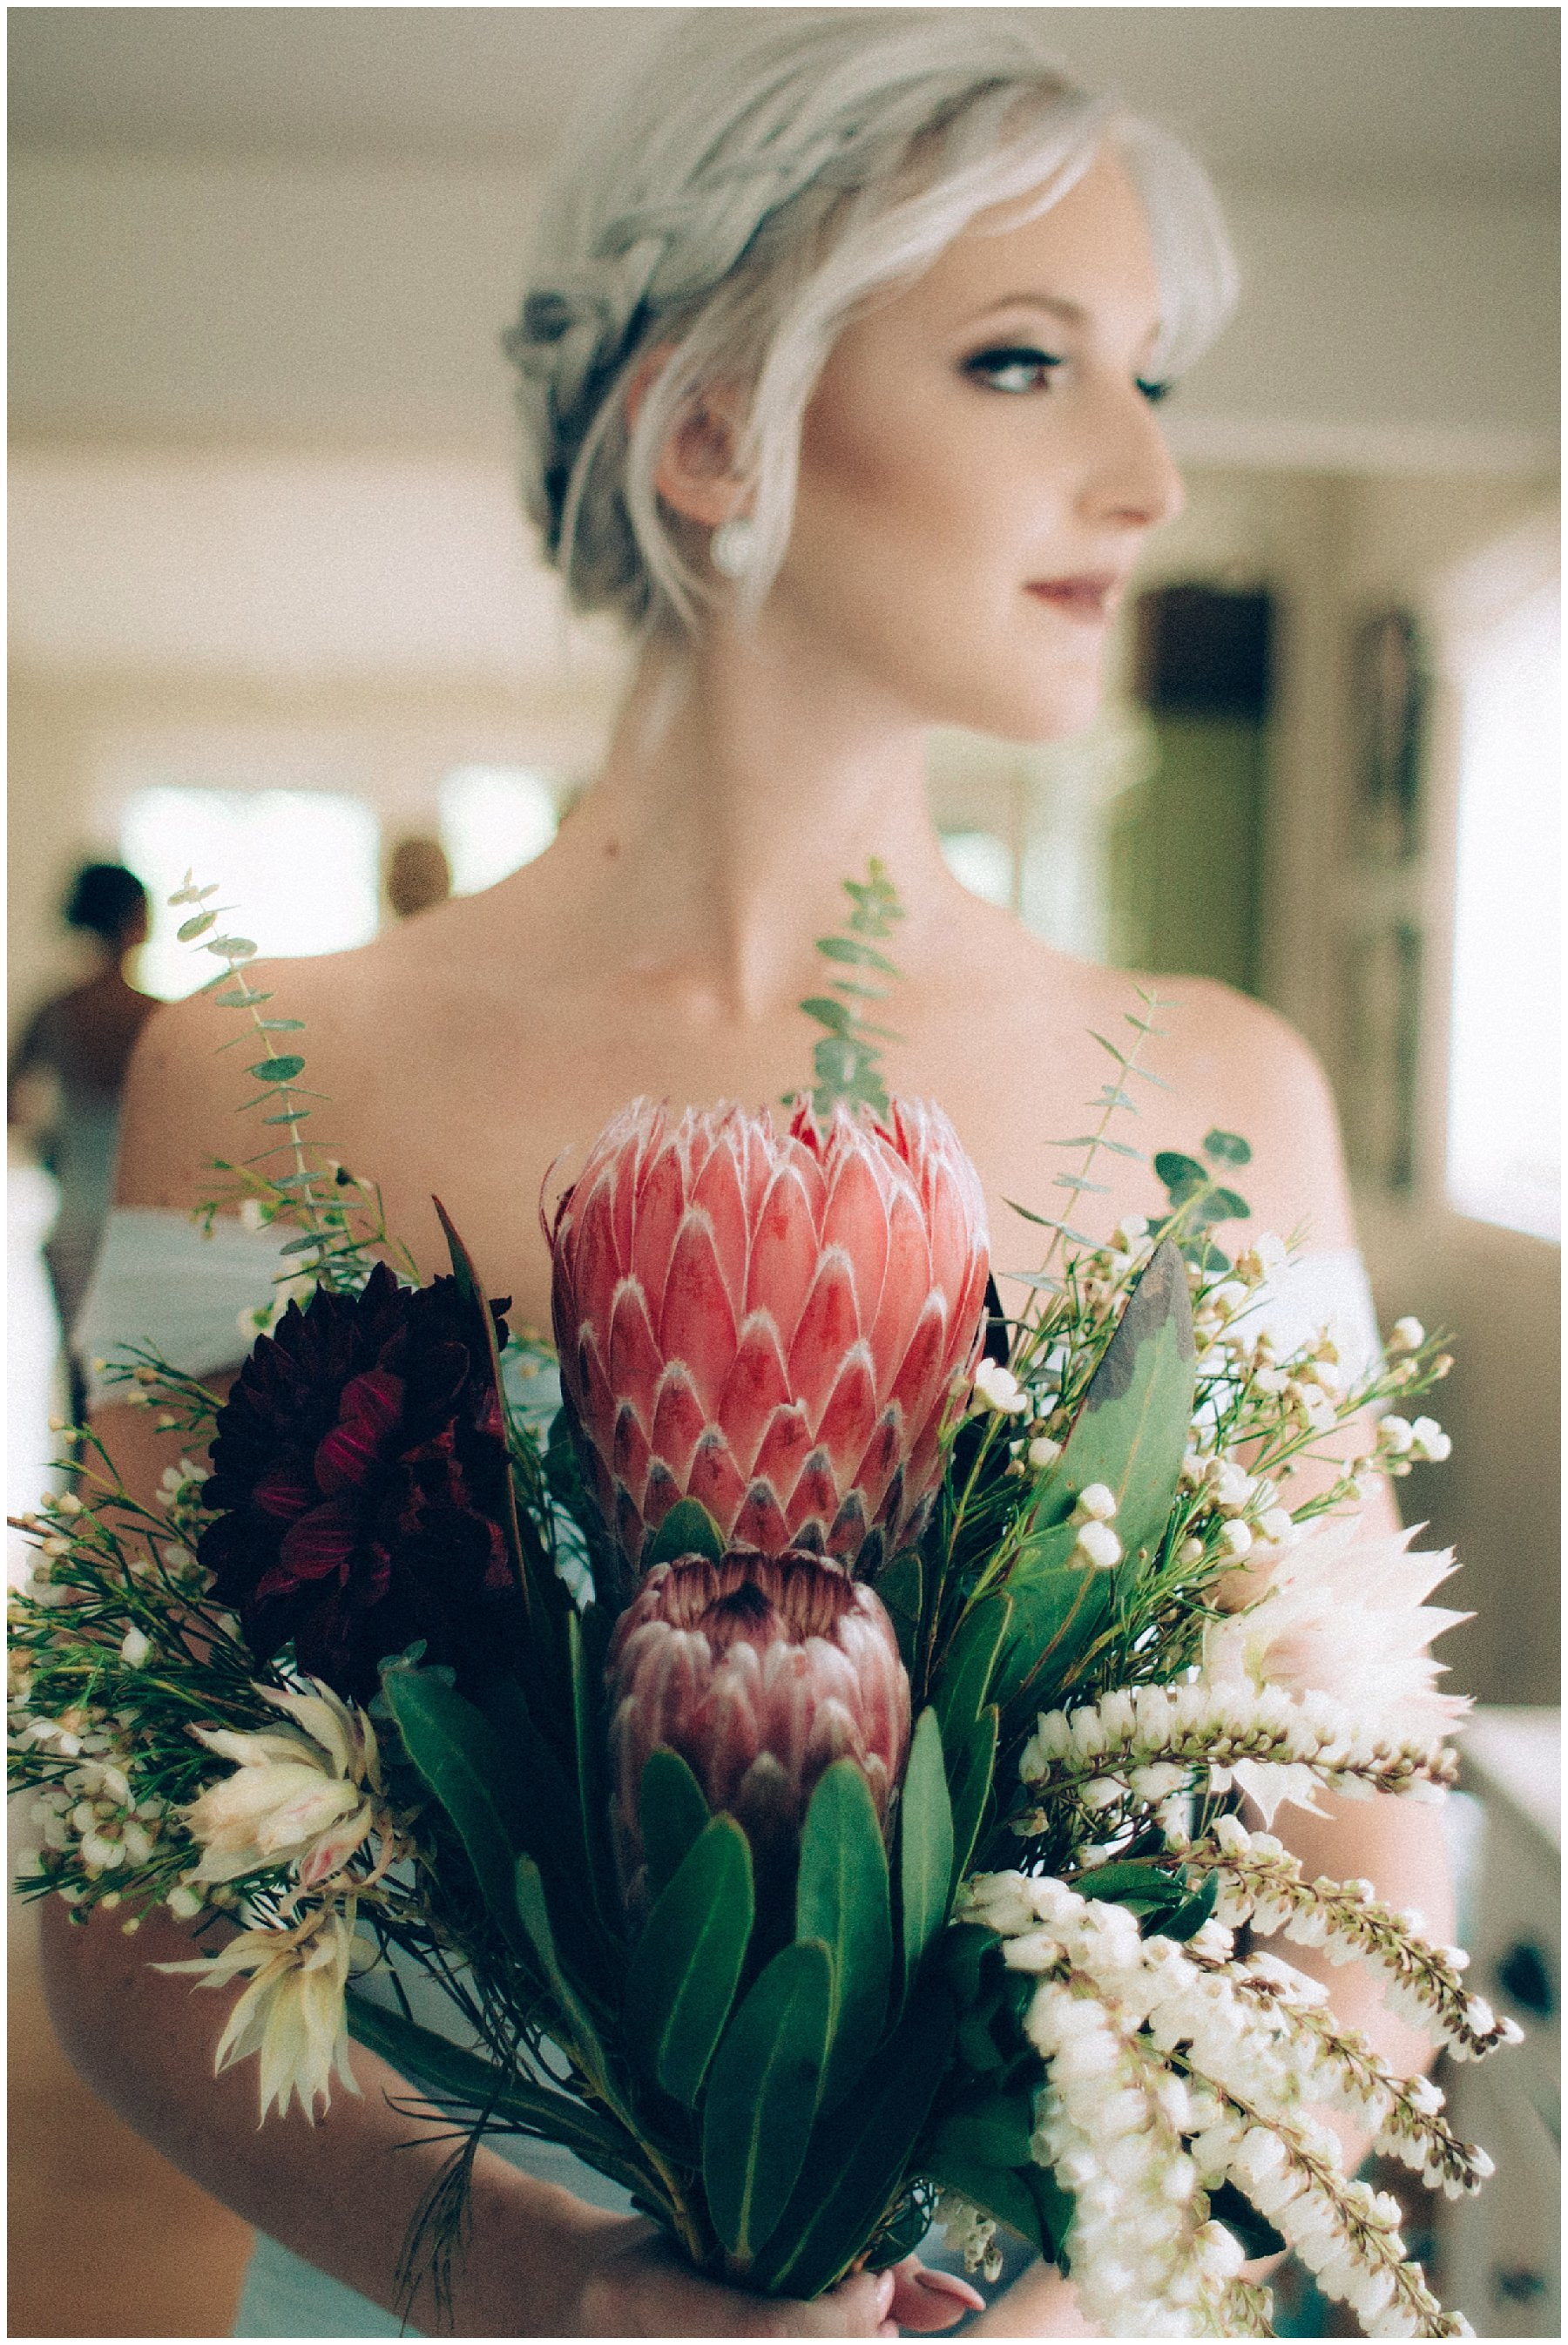 bridesmaid with grey hair holding protea bouquet in natural light